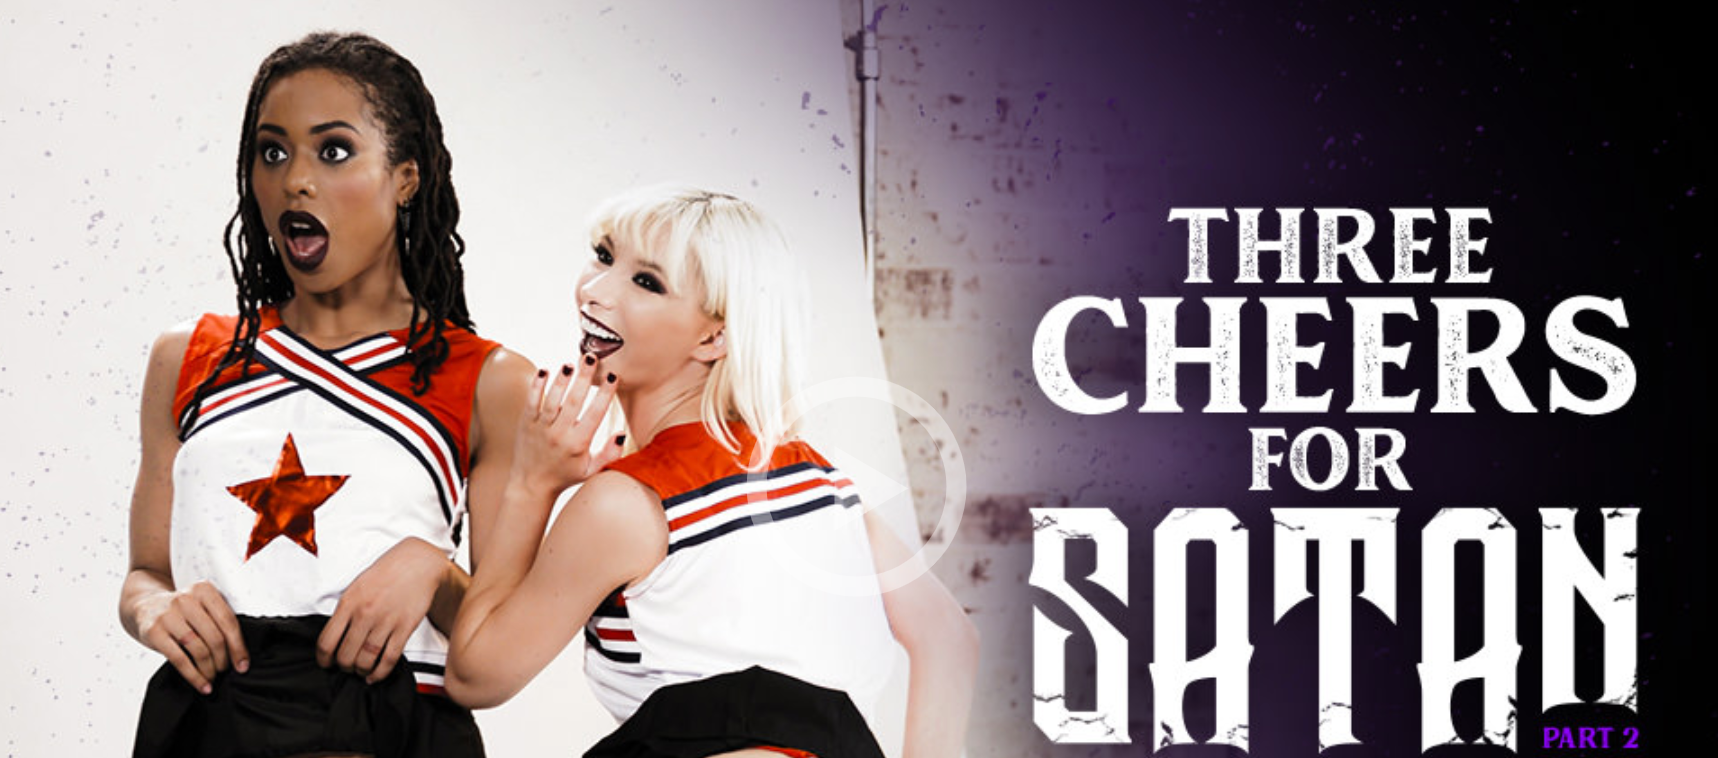 """Movie poster for Burning Angel's original film """"Three Cheers for Satan"""" featuring Kenzie, Kira, and Kyle"""